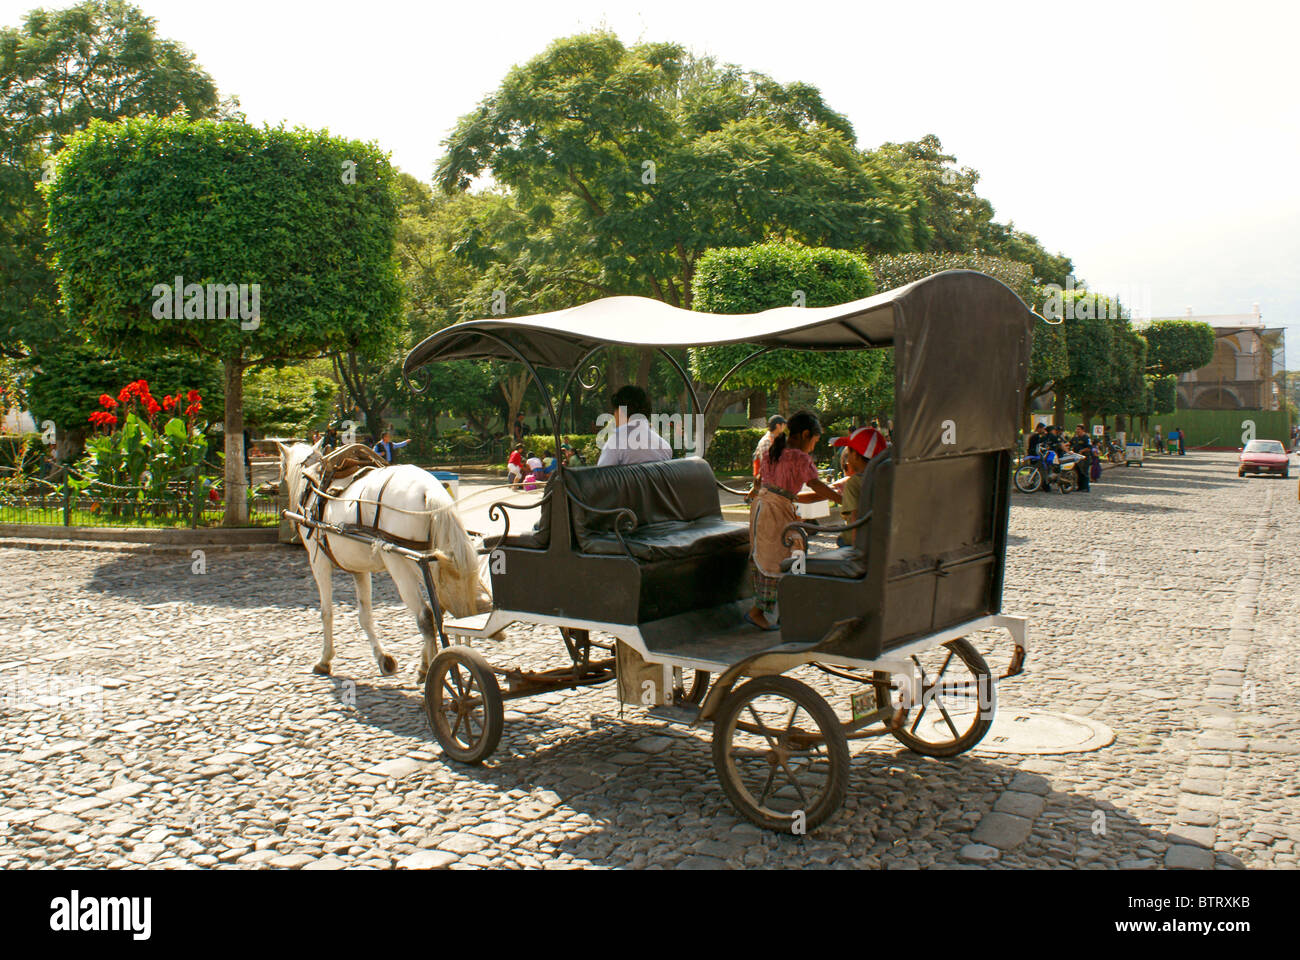 Horse and carriage in Antigua, Guatemala. Antigua is a UNESCO World heritage site. - Stock Image